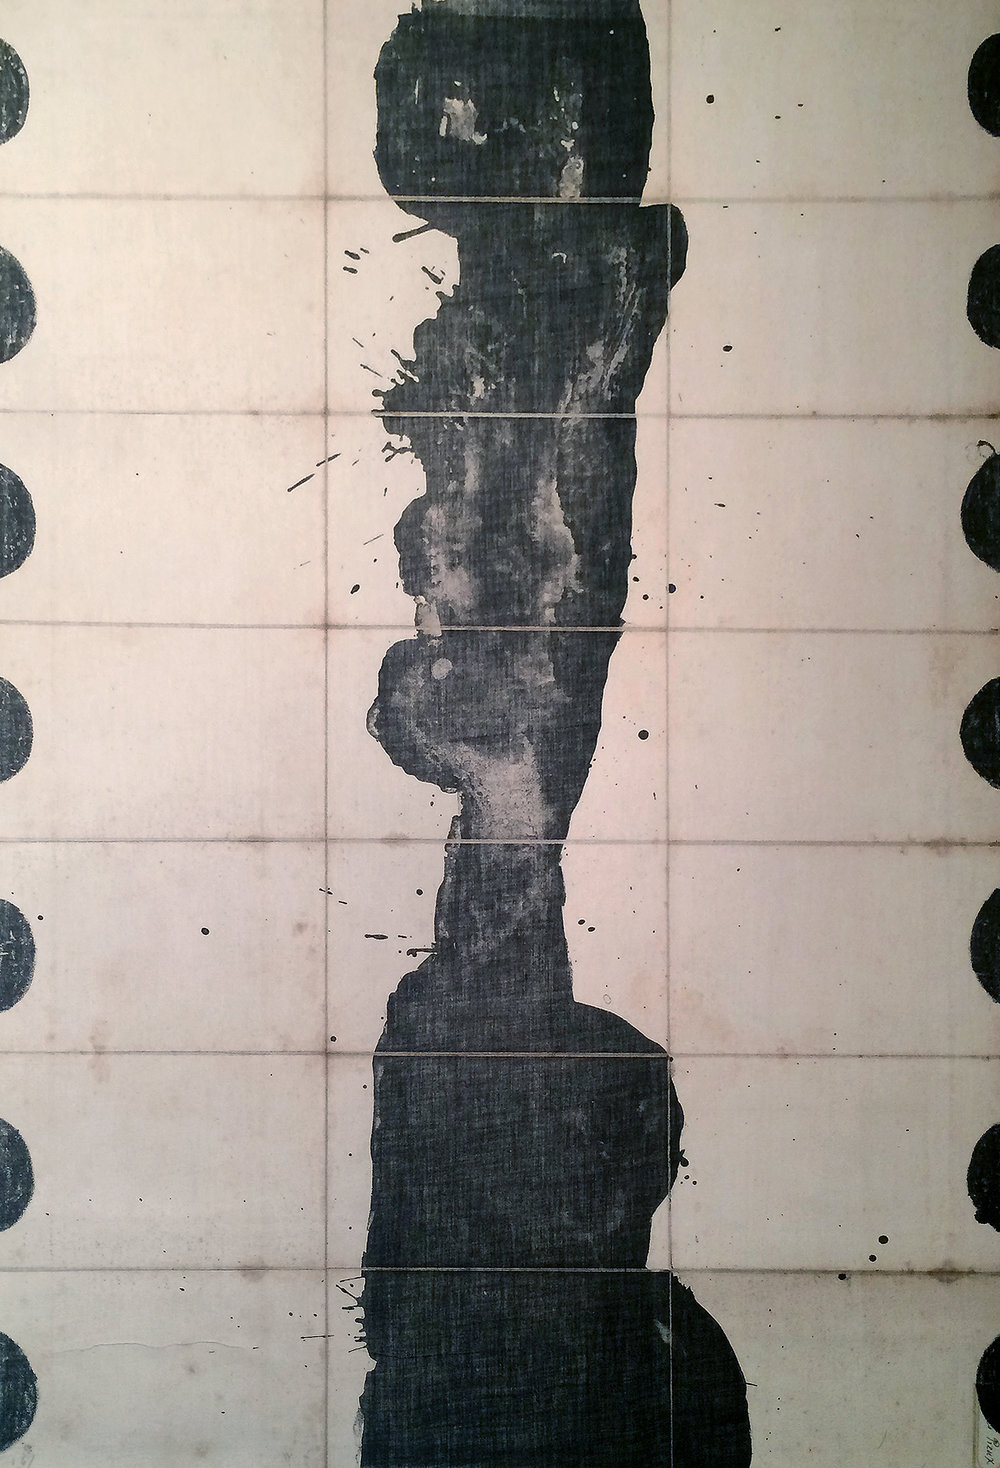 Black Blood I (ed. 16 of 19), 1989, 23.5 x 34.5 inches, Lithograph on canvas